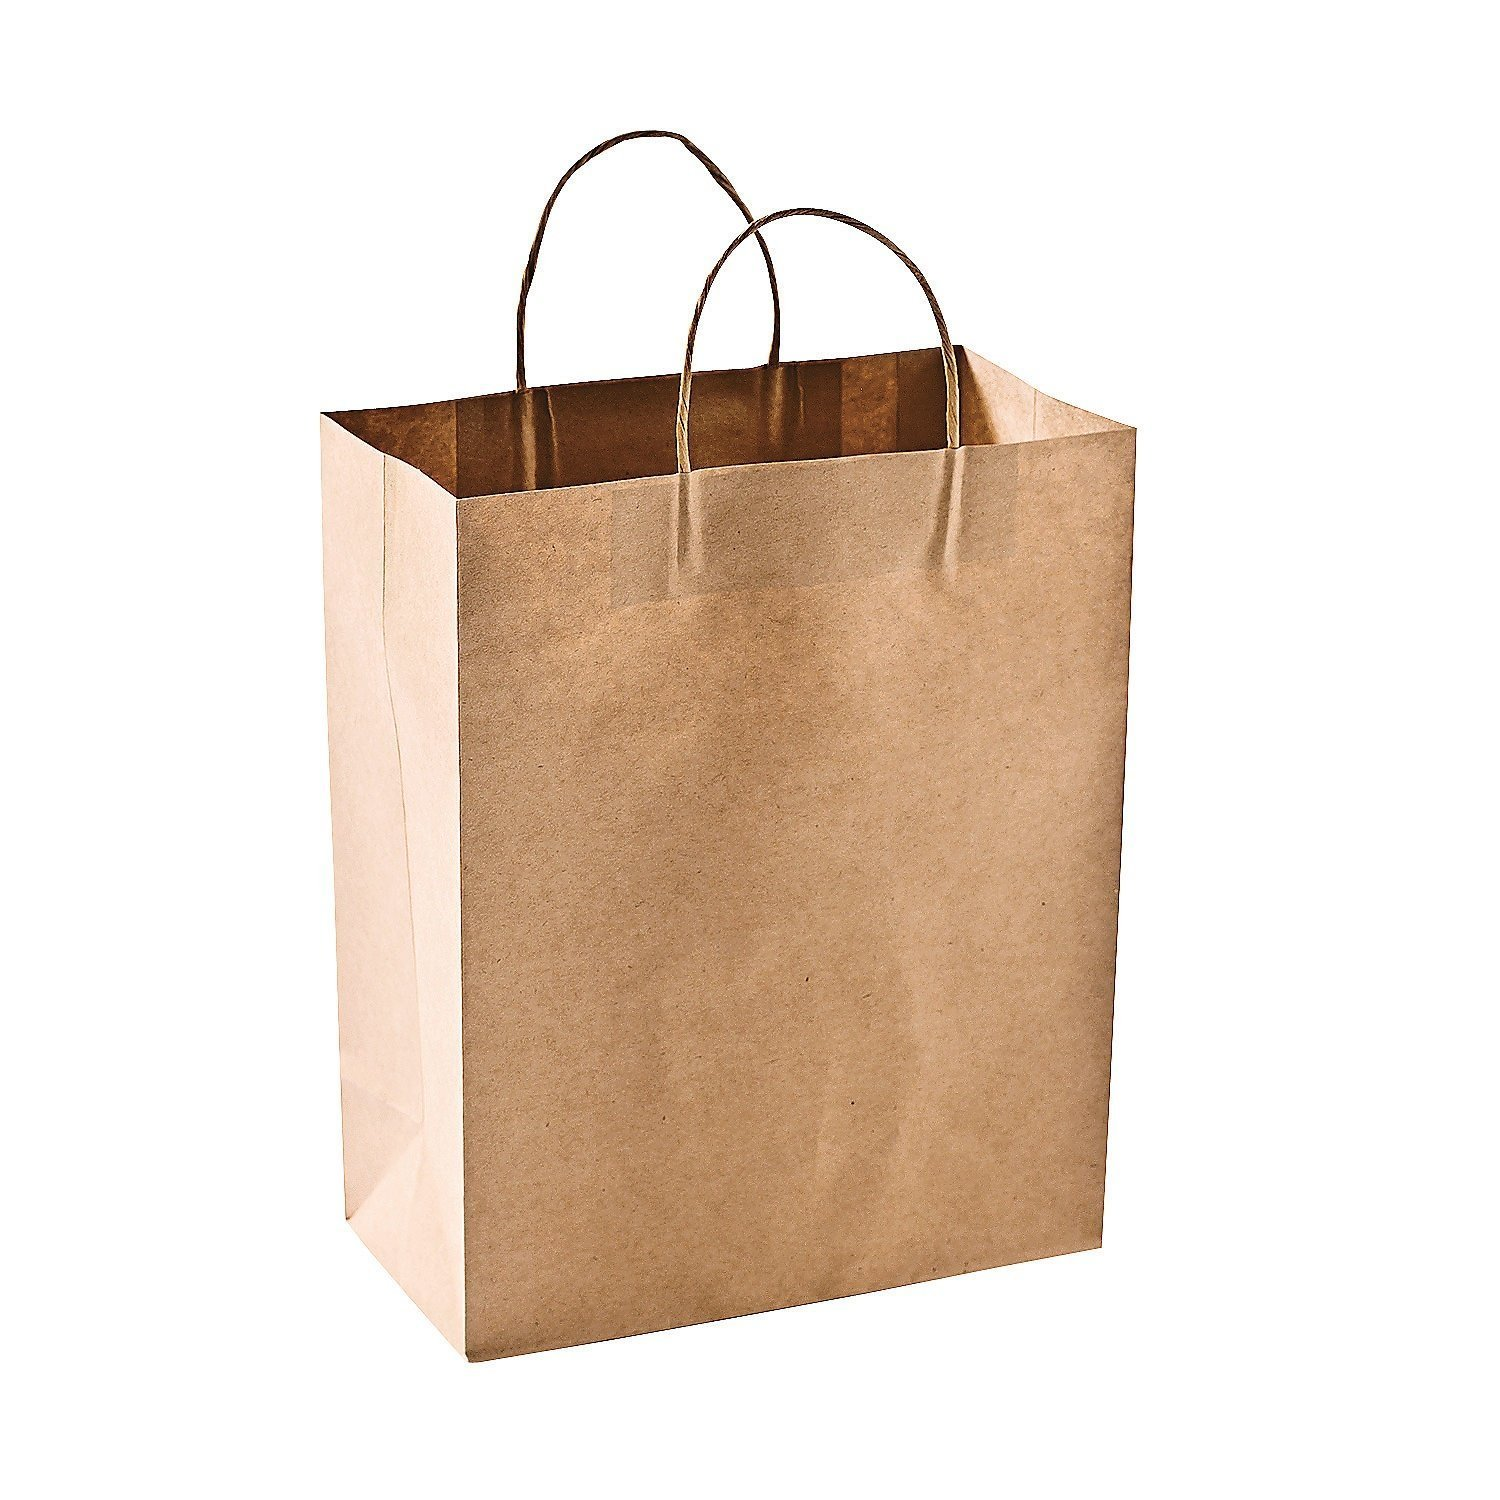 12x retail shopping craft gift bags brown paper with handles 12x retail shopping craft gift bags brown paper with handles retail bags 10x5x13 jeuxipadfo Gallery